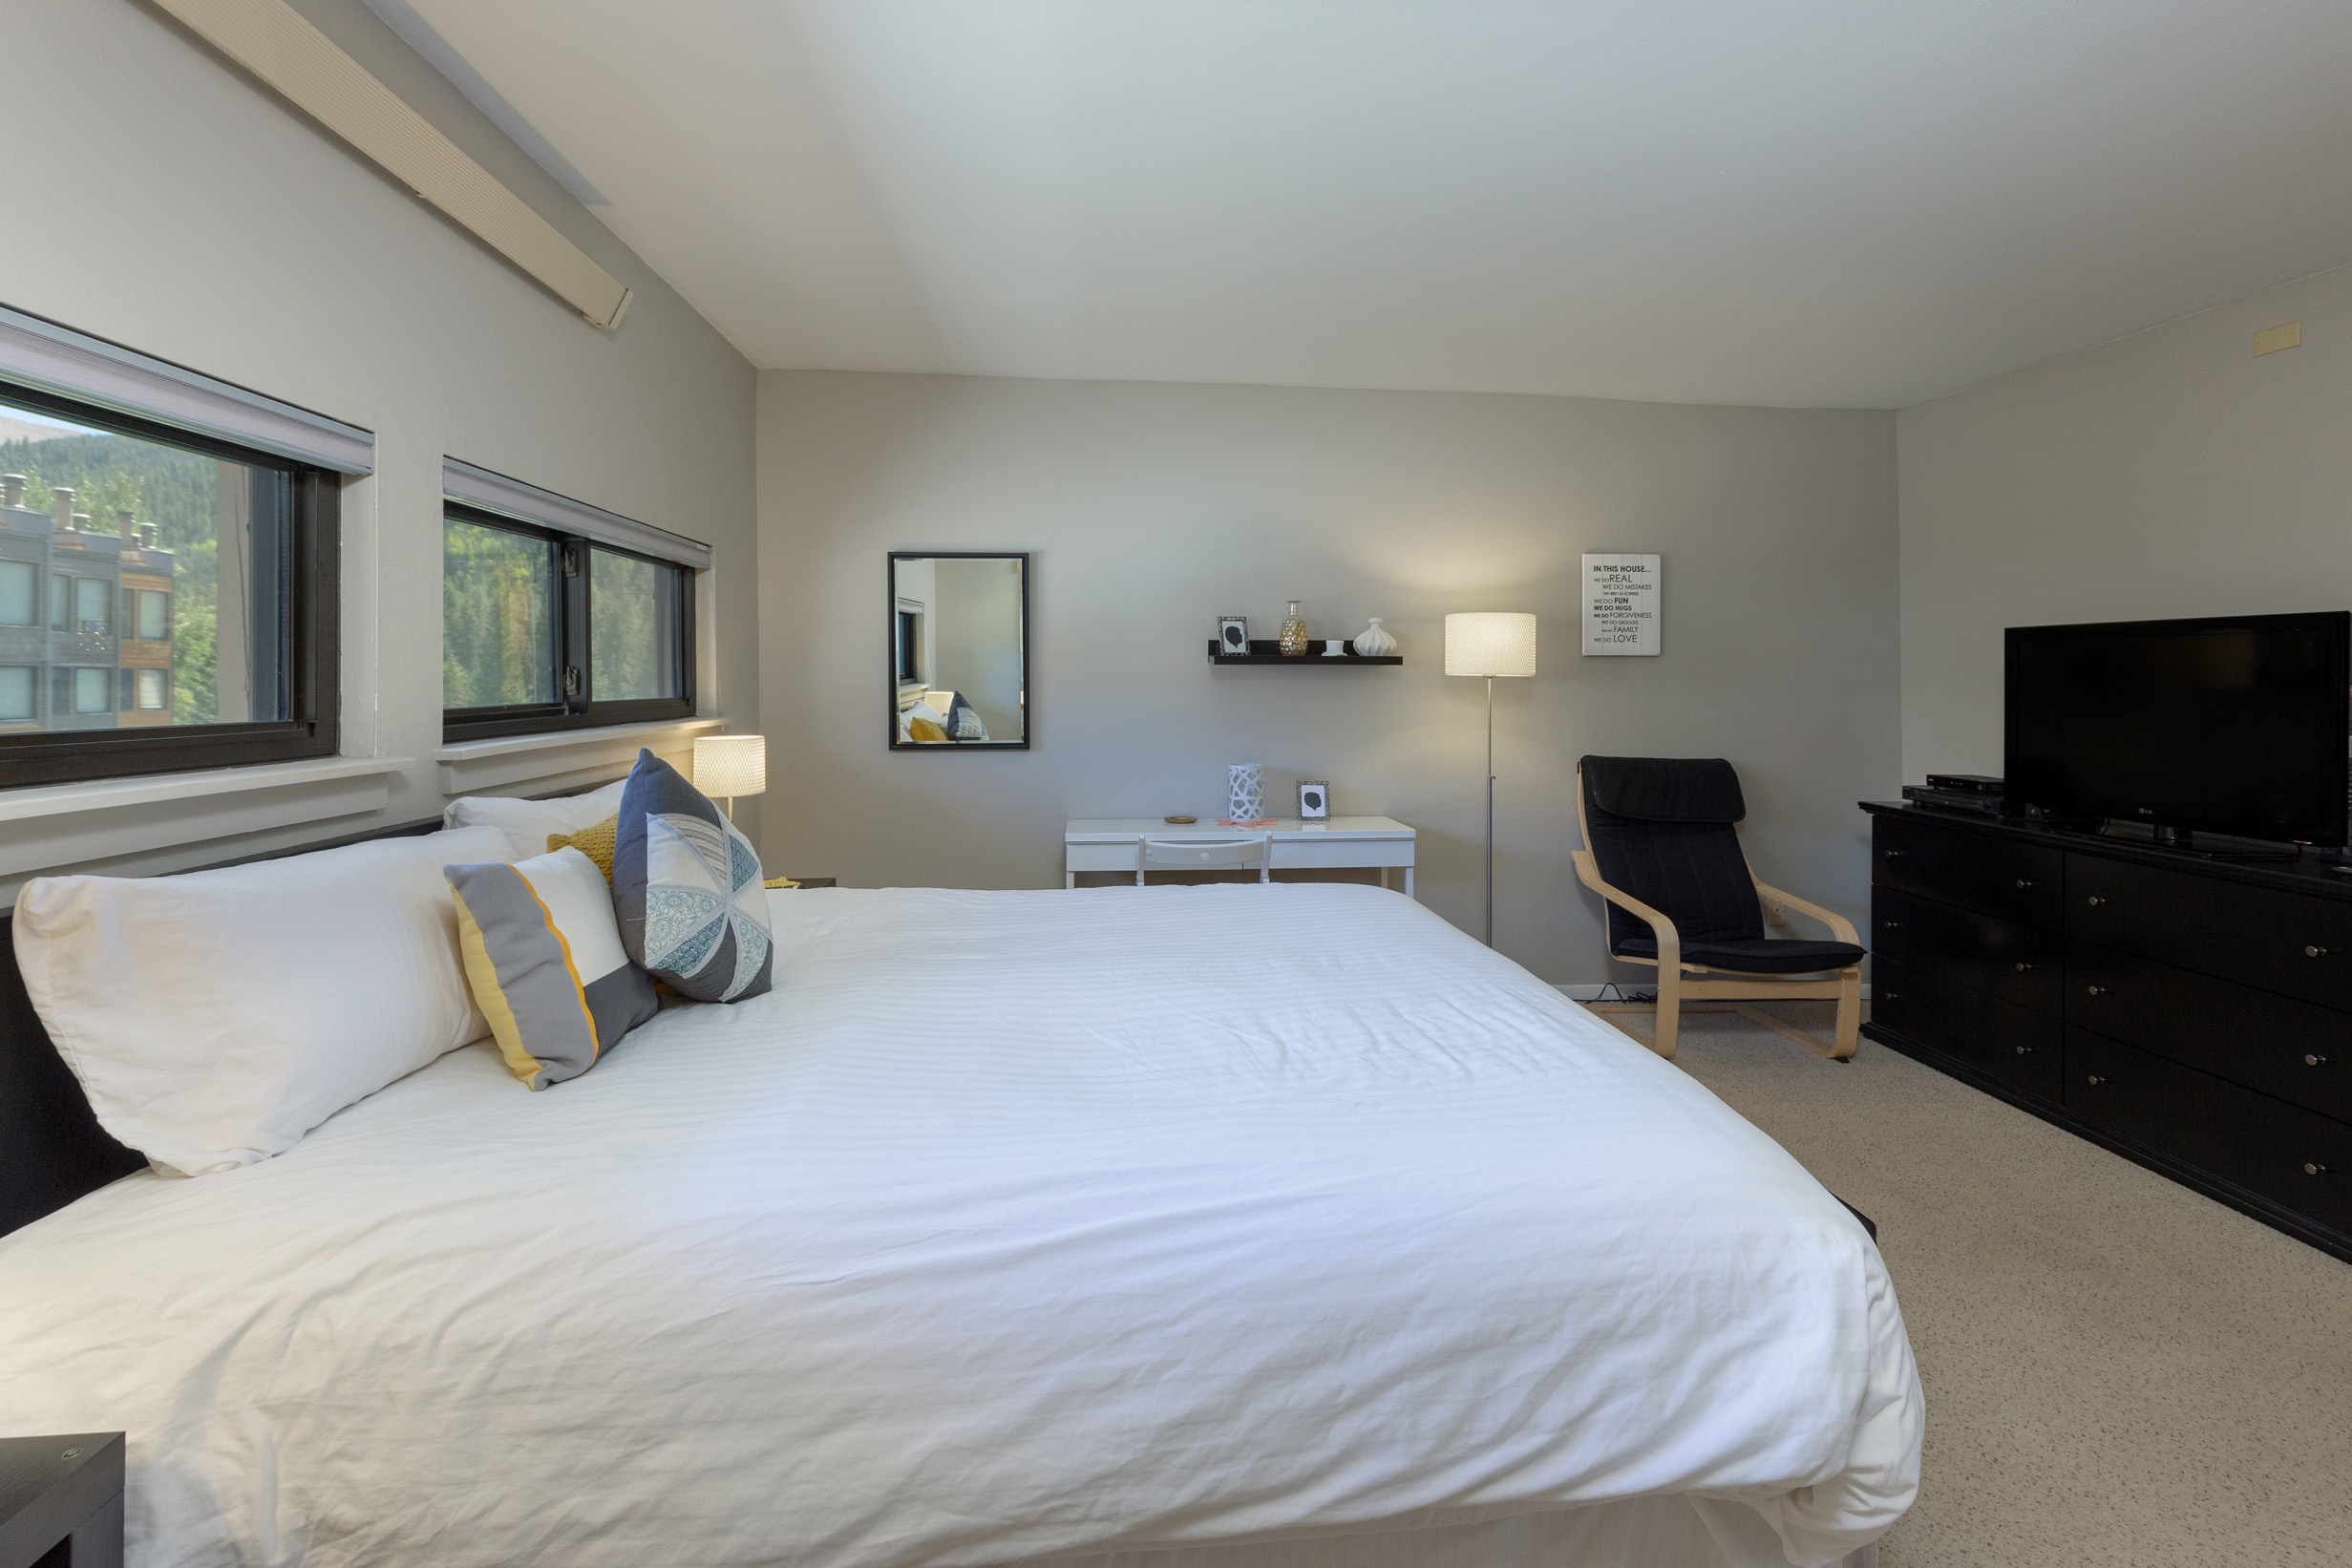 The first bedroom features a king-sized bed with Ivory White Bedding and a flat screen TV.